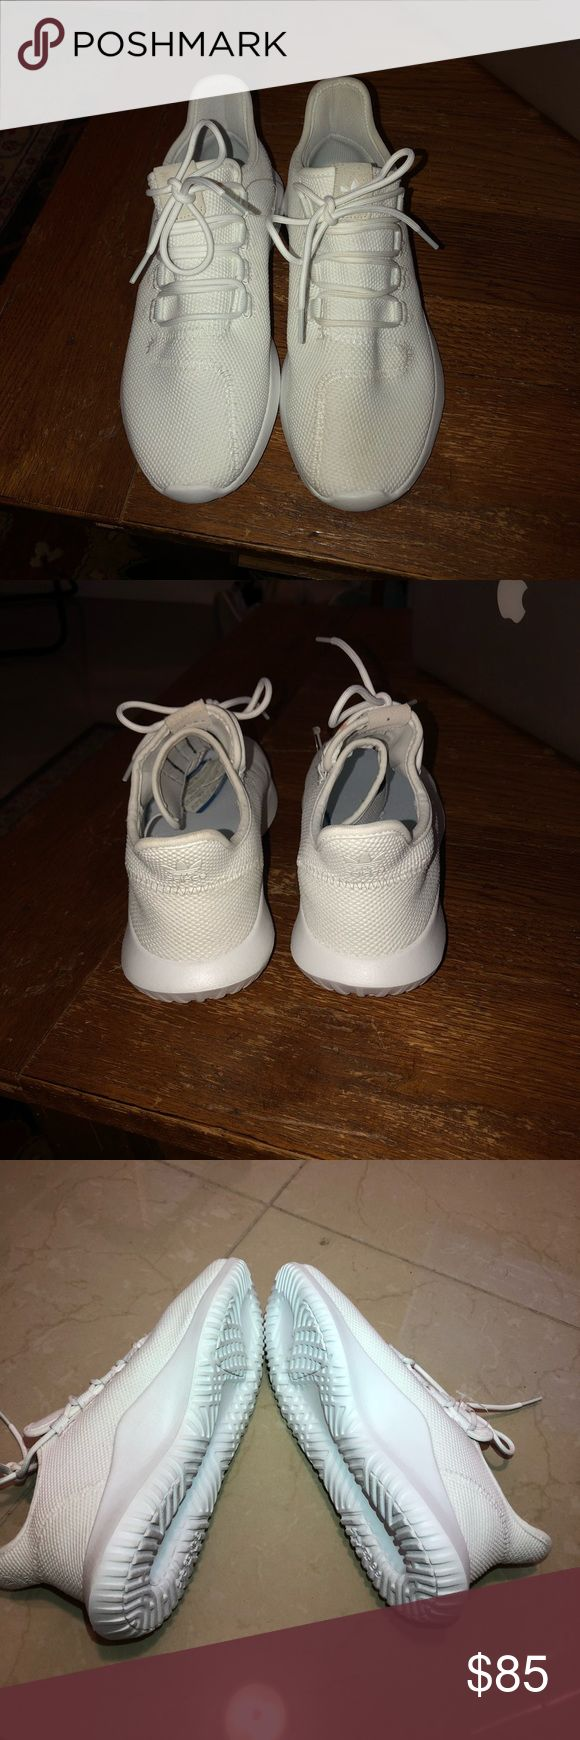 Adidas tubular White on white adidas tubular shadows. Size 8! Never worn. One speck of dirt on lace, would come out with water and soap. adidas Shoes Sneakers